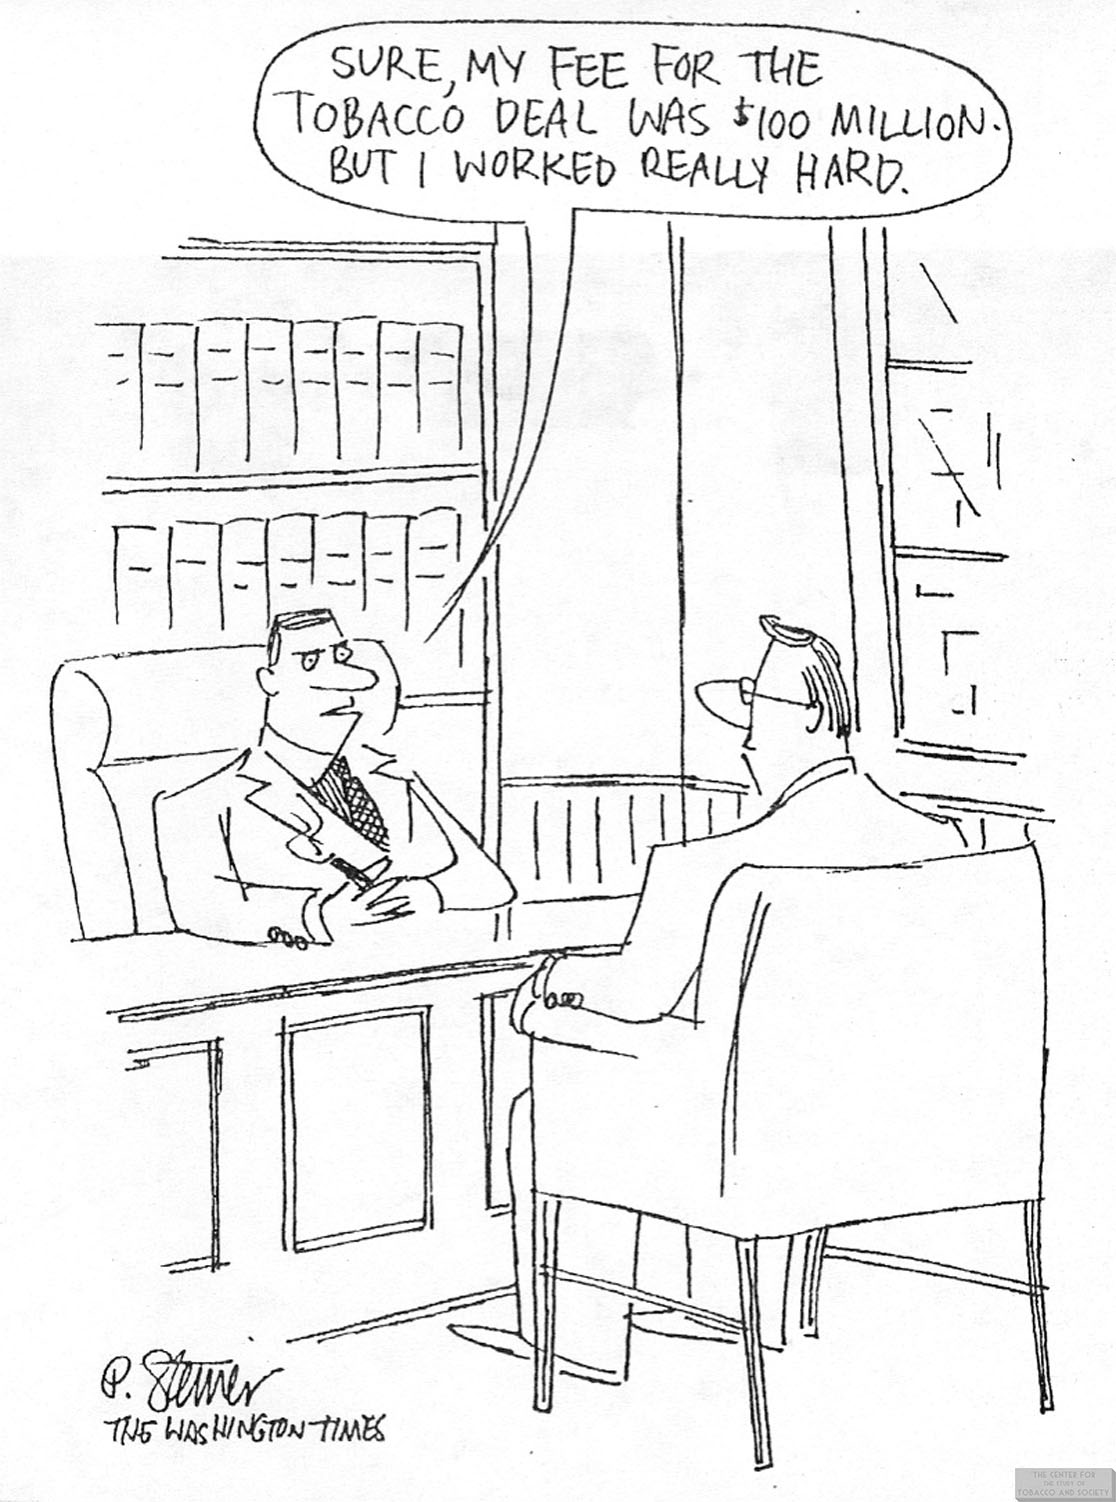 Steiner Cartoon Lawyers Fee for Tobacco Deal 1